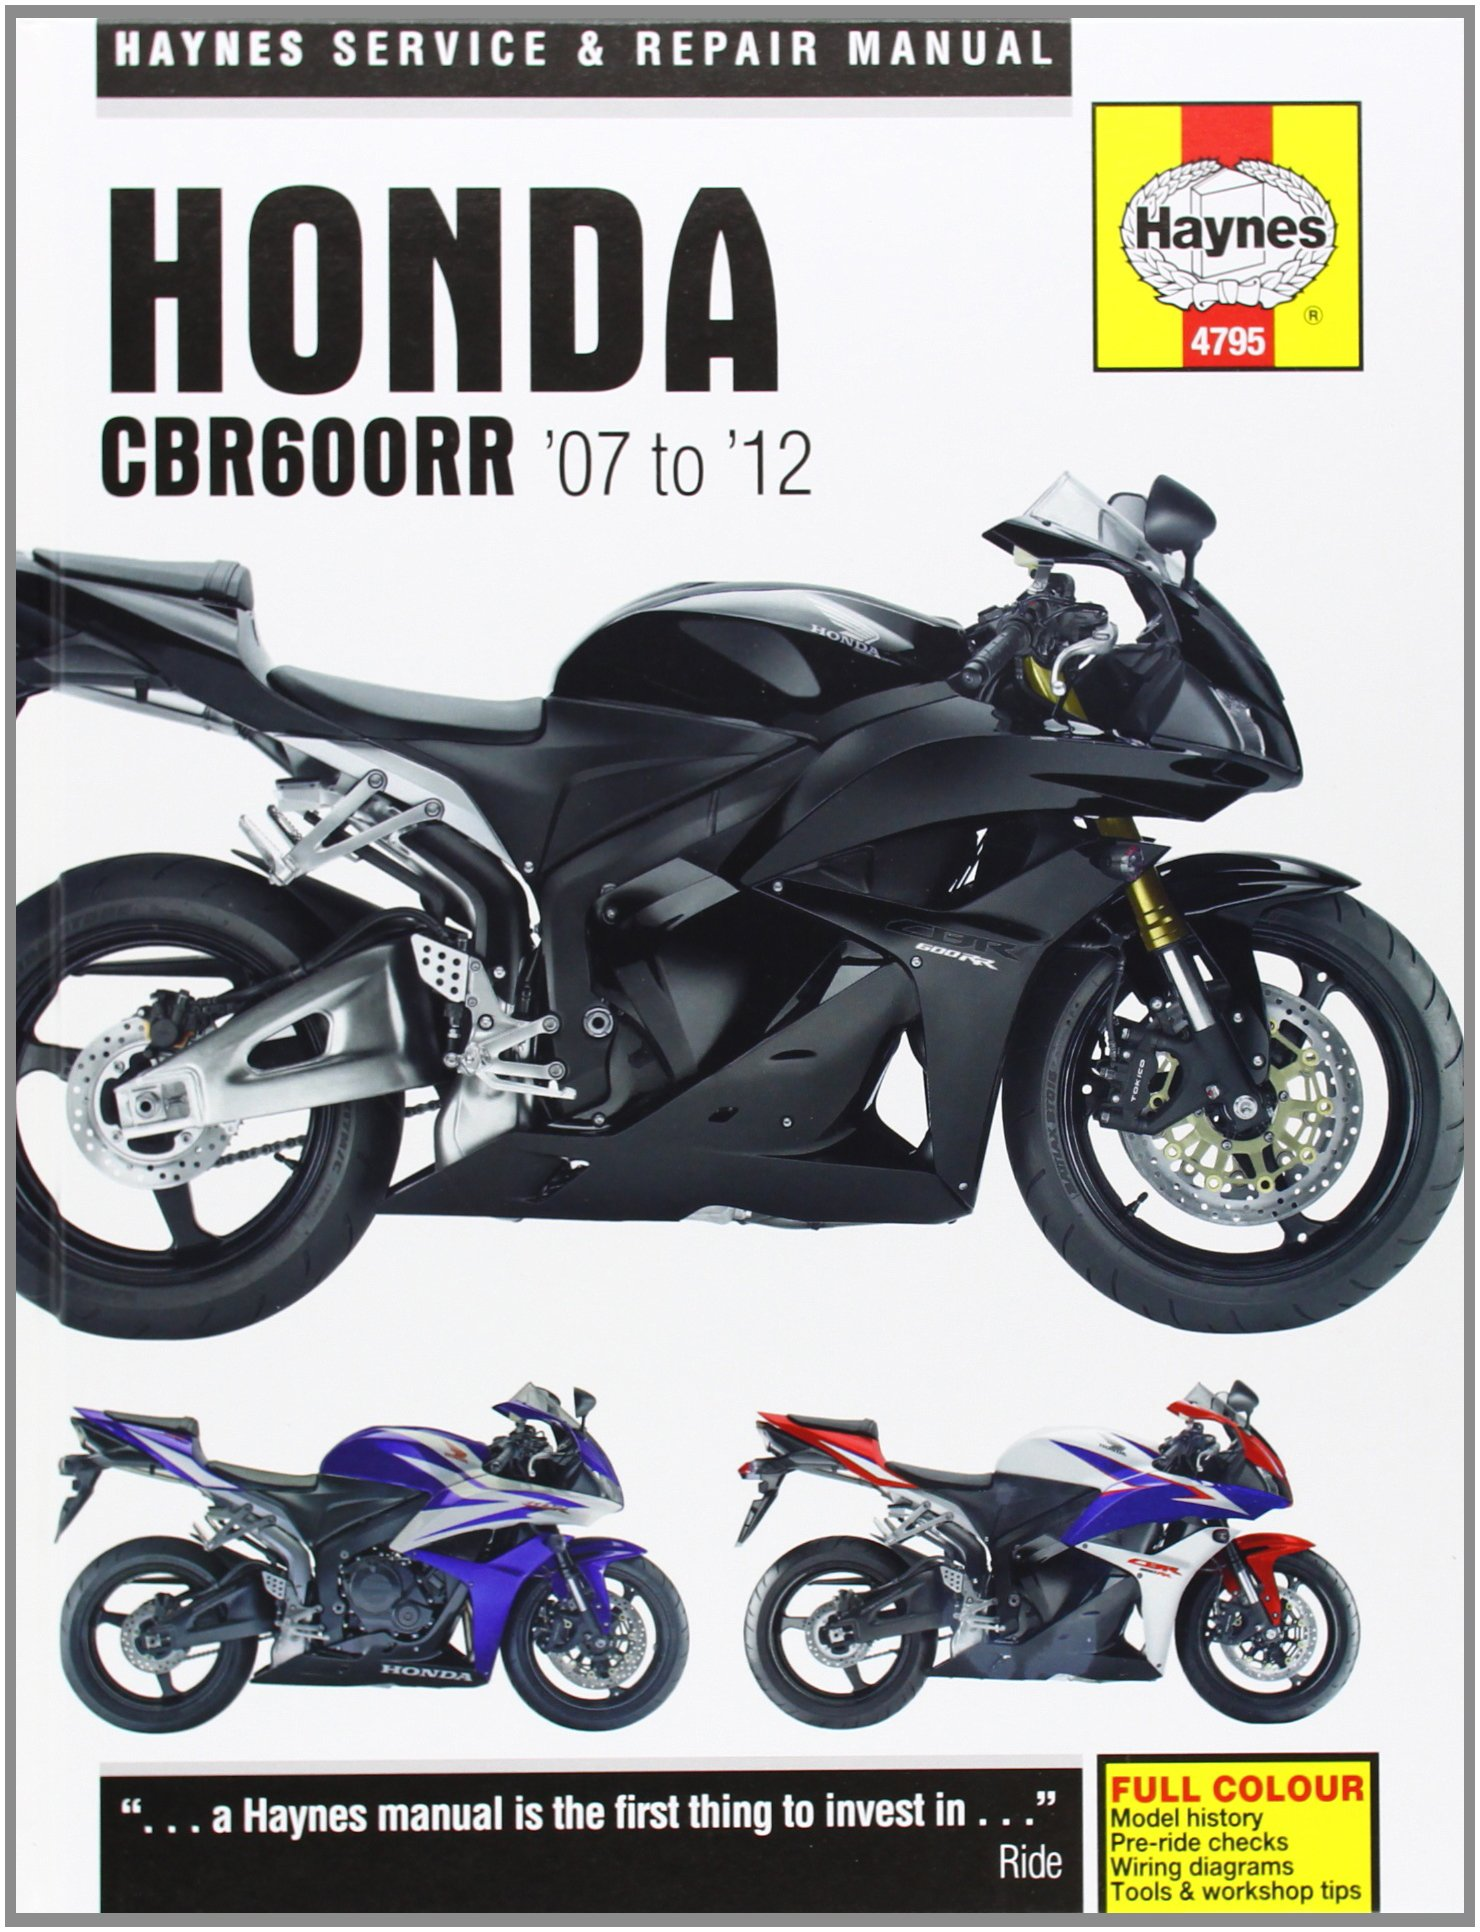 2009 Honda Cbr600rr Wiring Diagram Library Peugeot Fog Lights Service And Repair Manual 2007 2012 Haynes Manuals